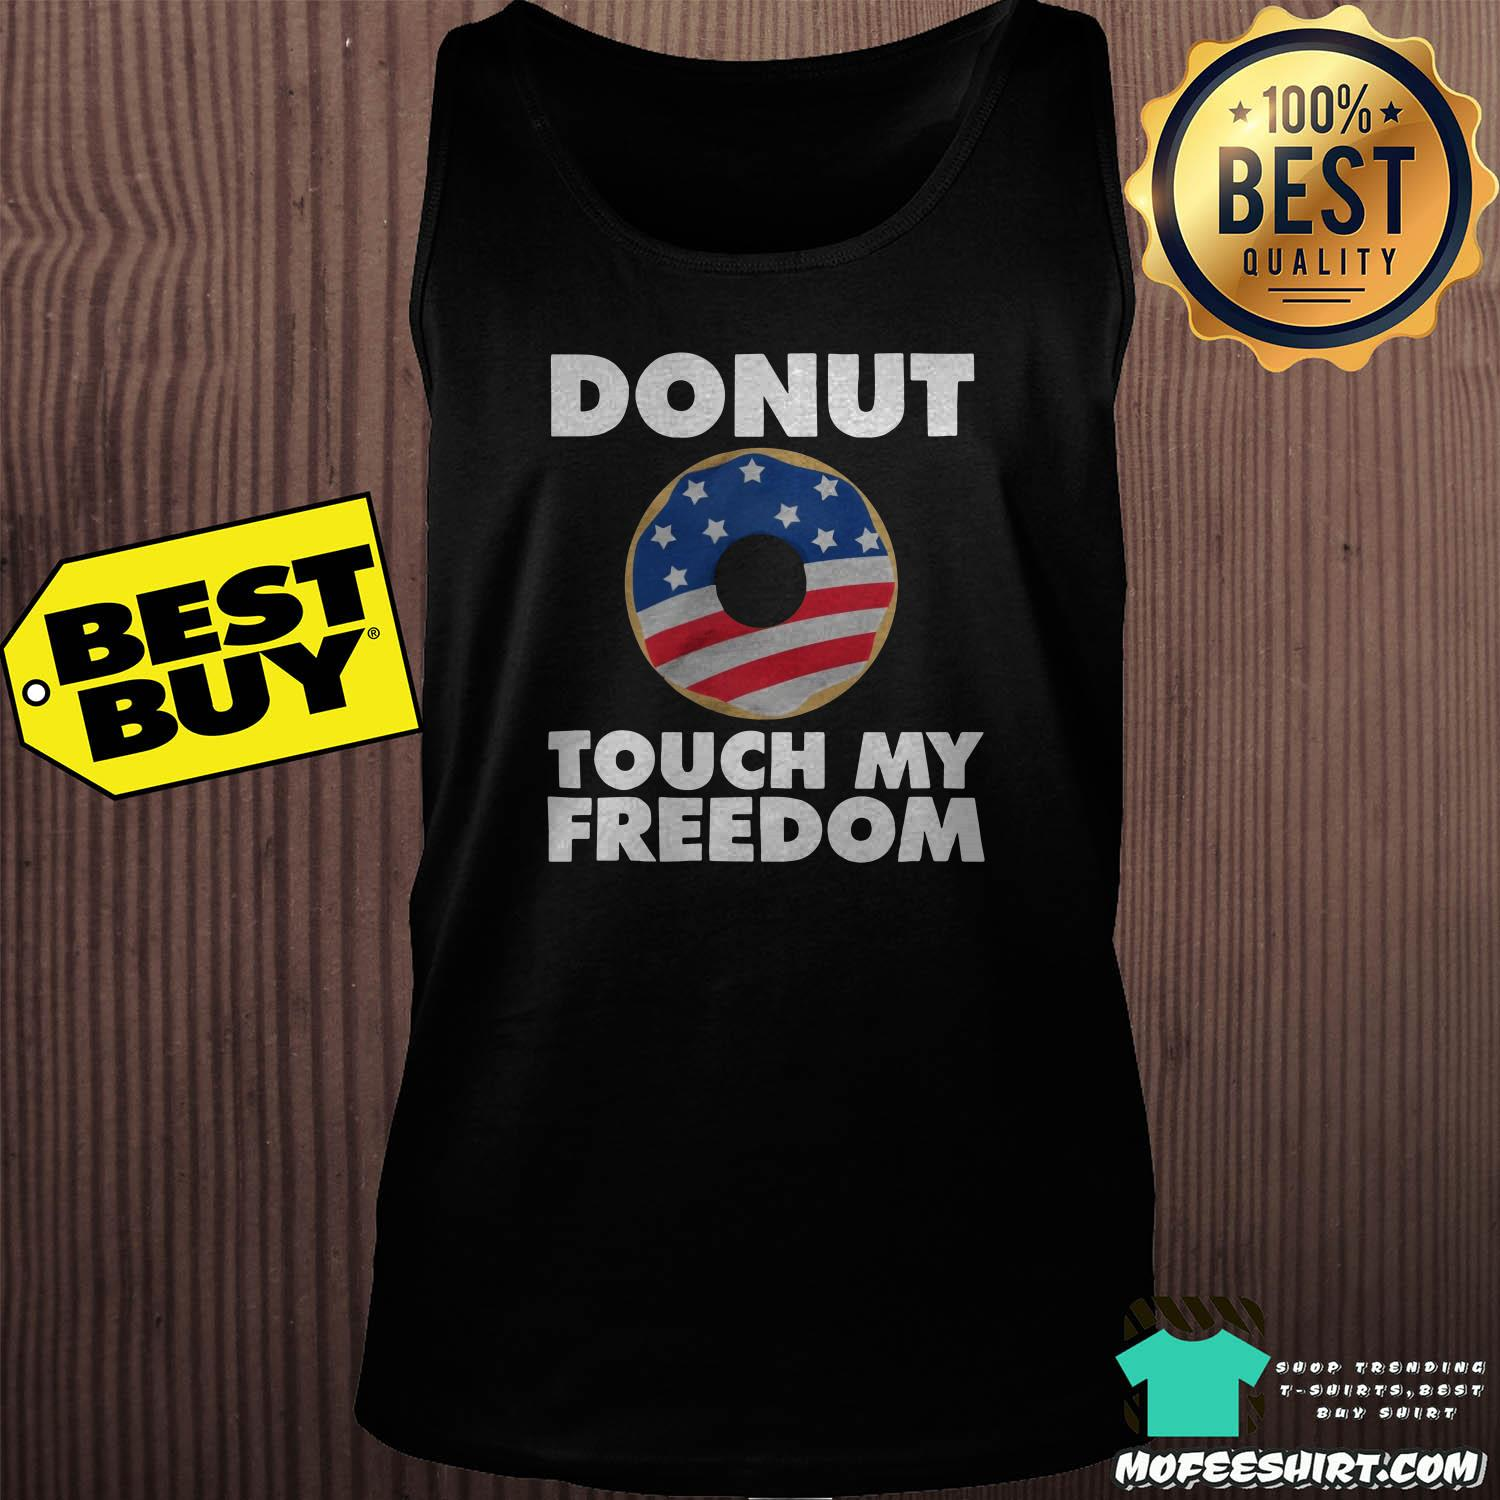 donut touch my freedom america flag 4th of july tank top - Donut touch my Freedom America Flag 4th Of July shirt